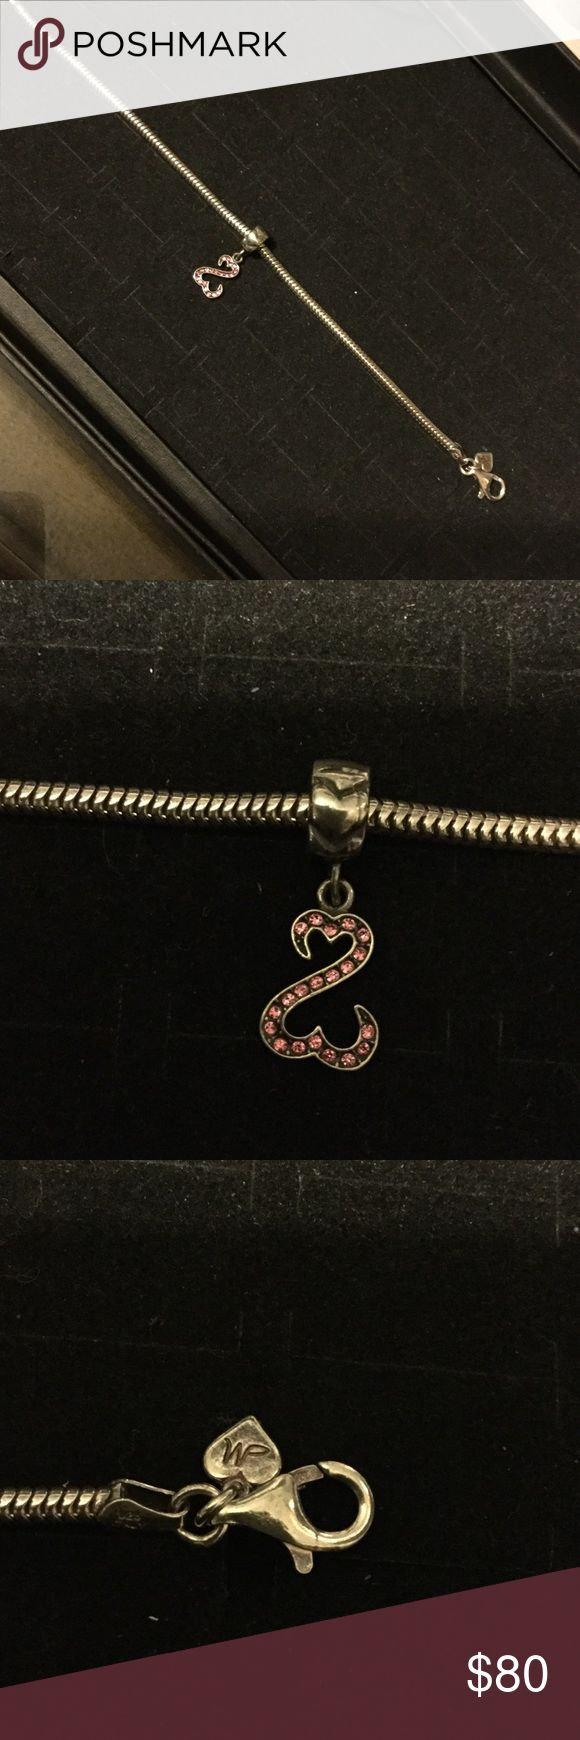 Preowned Kay Jewelers Bracelet with pink Charm Preowned 925 SS Kay Jewelers Bracelet (CHARMED MEMORIES). Lobster clasp. Comes with SS Pink Swarovski Open ♥️ hearts charm by Jane Seymour. No missing Crystal. I try 2 provide specific detail including imperfections so there won't be any misinterpretation,miscommunication & dissatisfaction w purchase. Please look at all the pictures  ask any questions before purchase. Thank you 😊 🙏😍❤️😜 Kay Jewelers Jewelry Bracelets